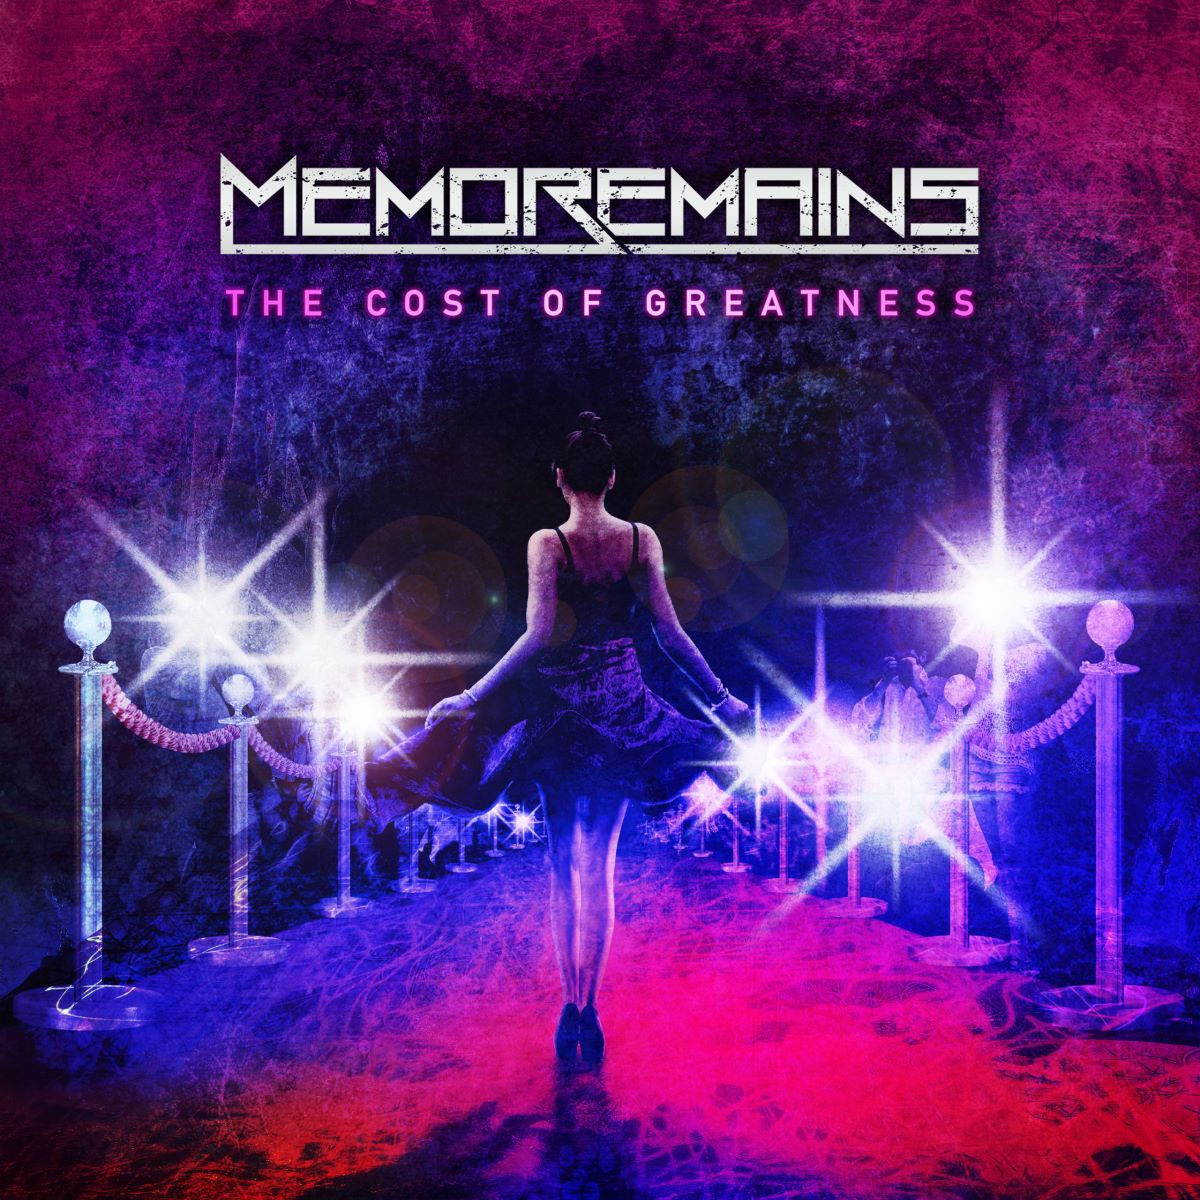 MEMOREMAINS - The Cost of Greatness - album cover